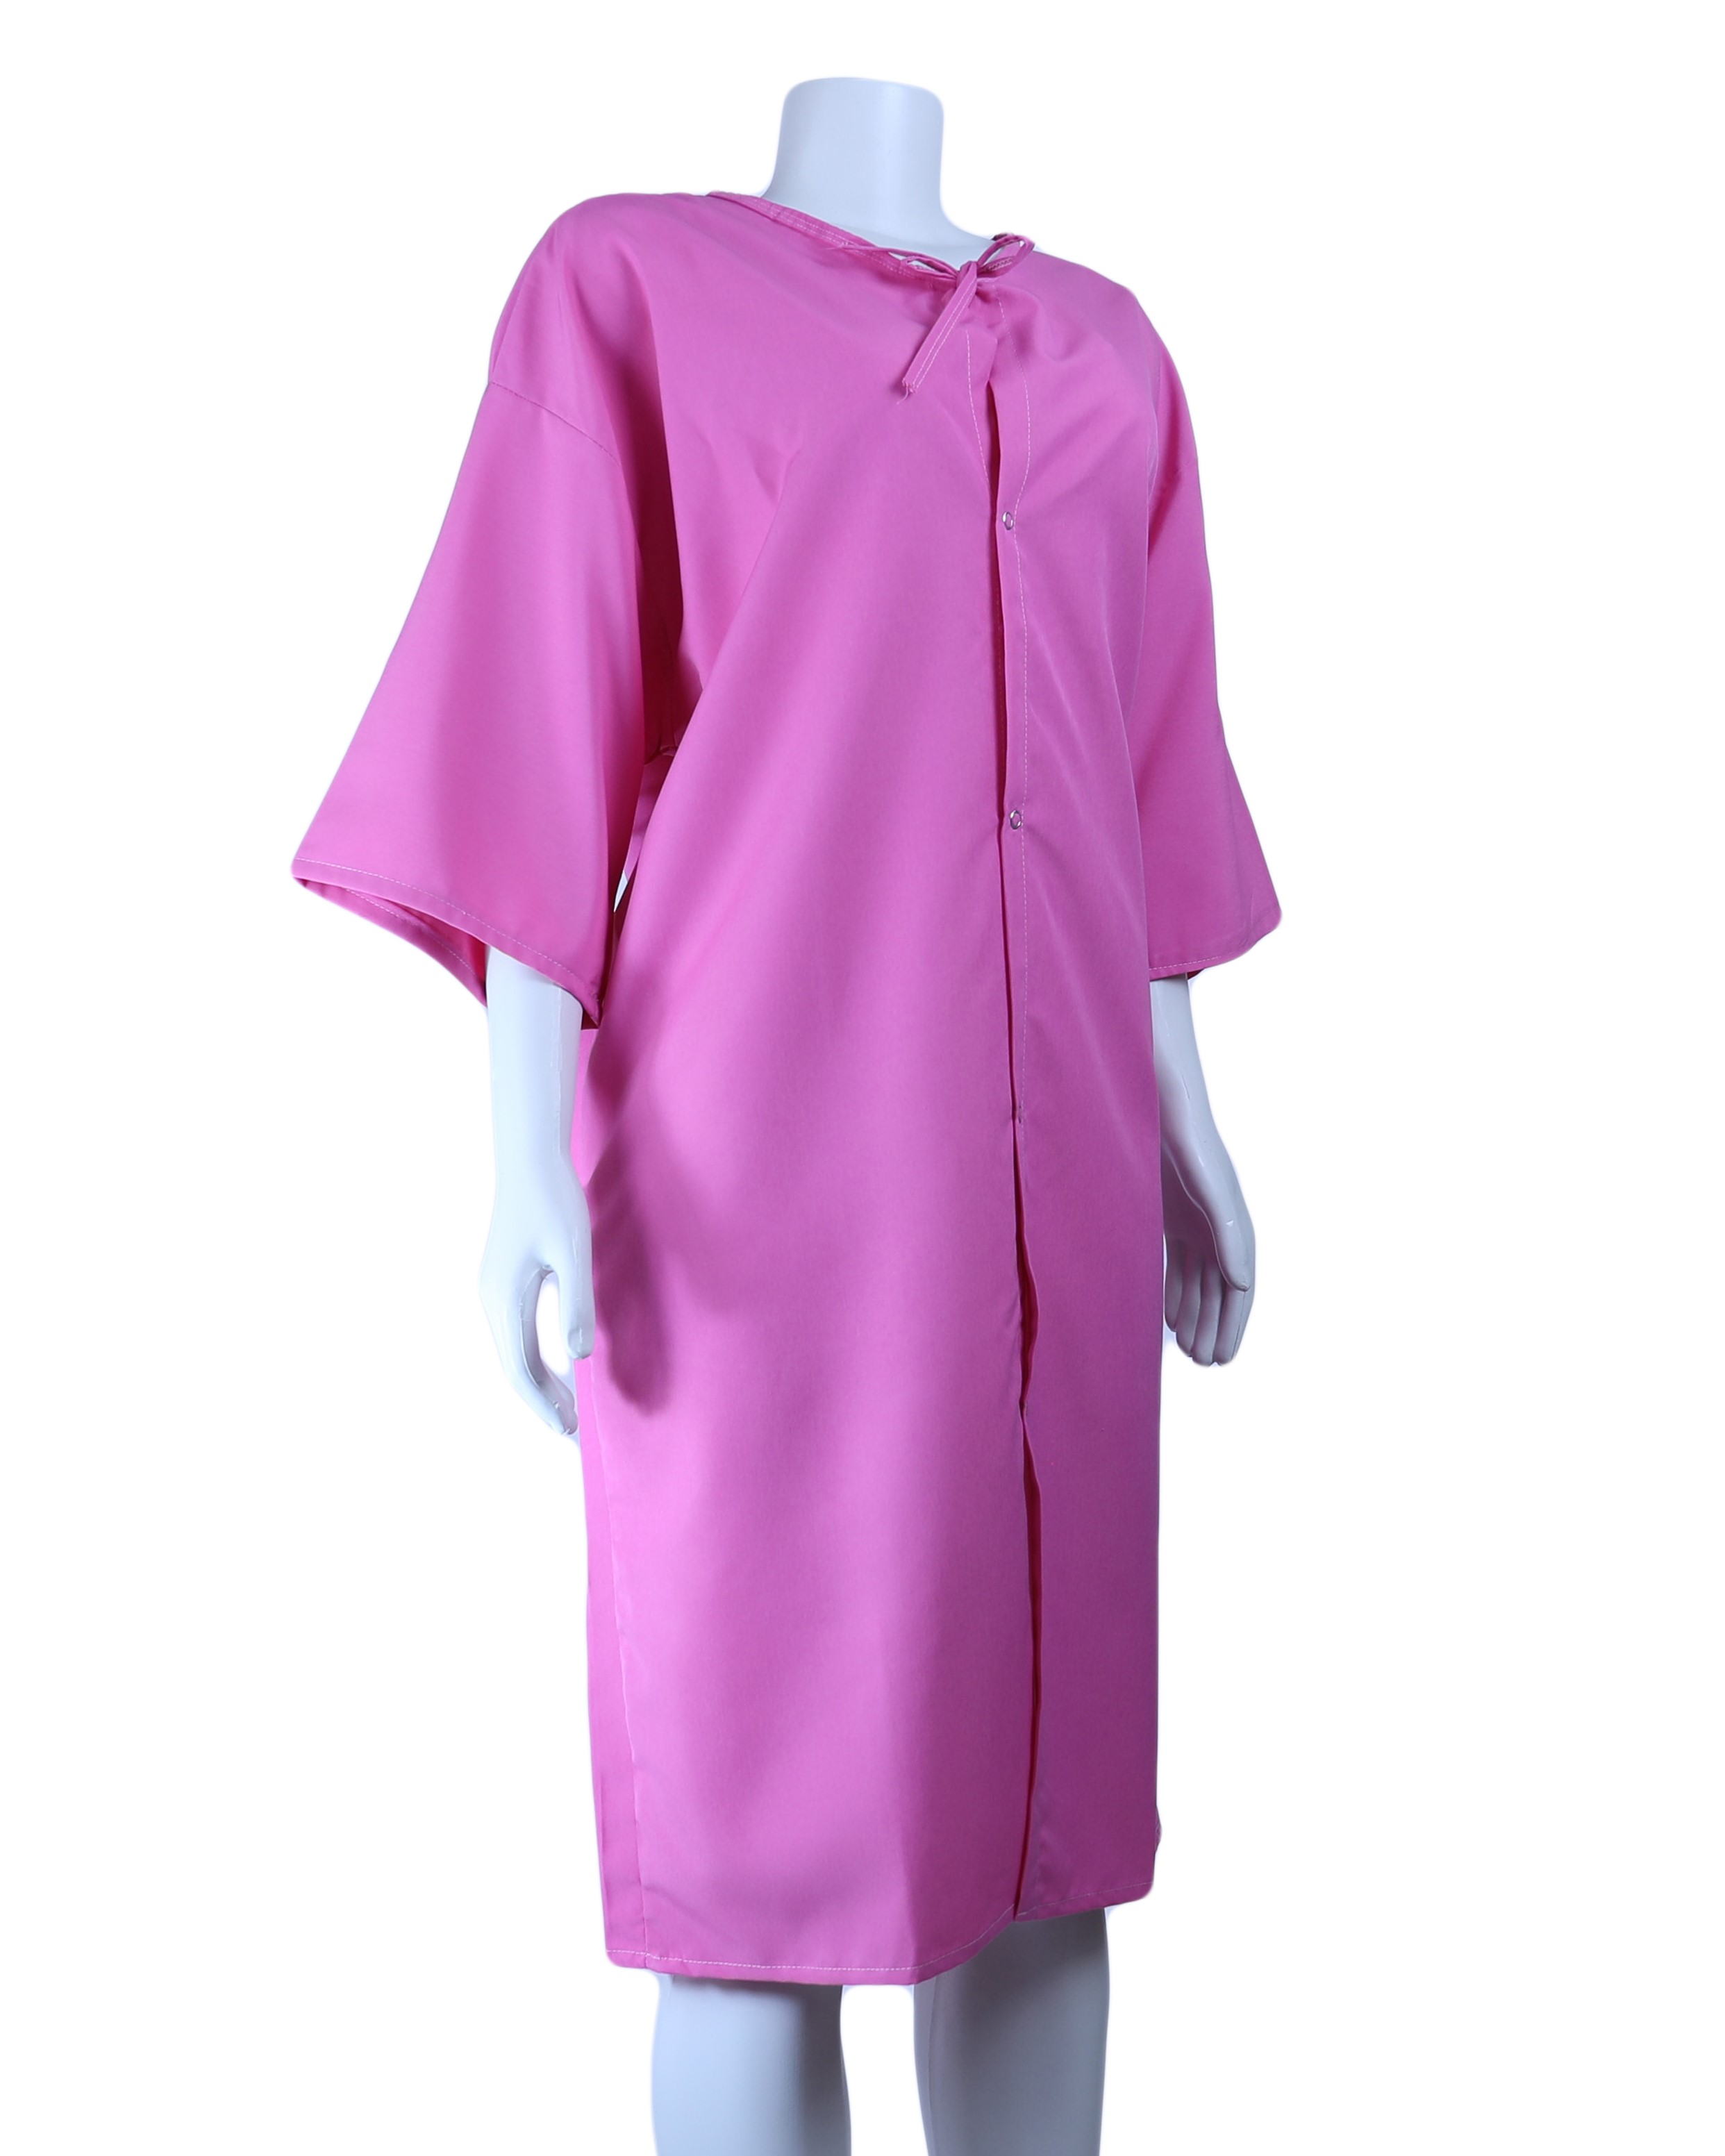 Exam Gown-F08